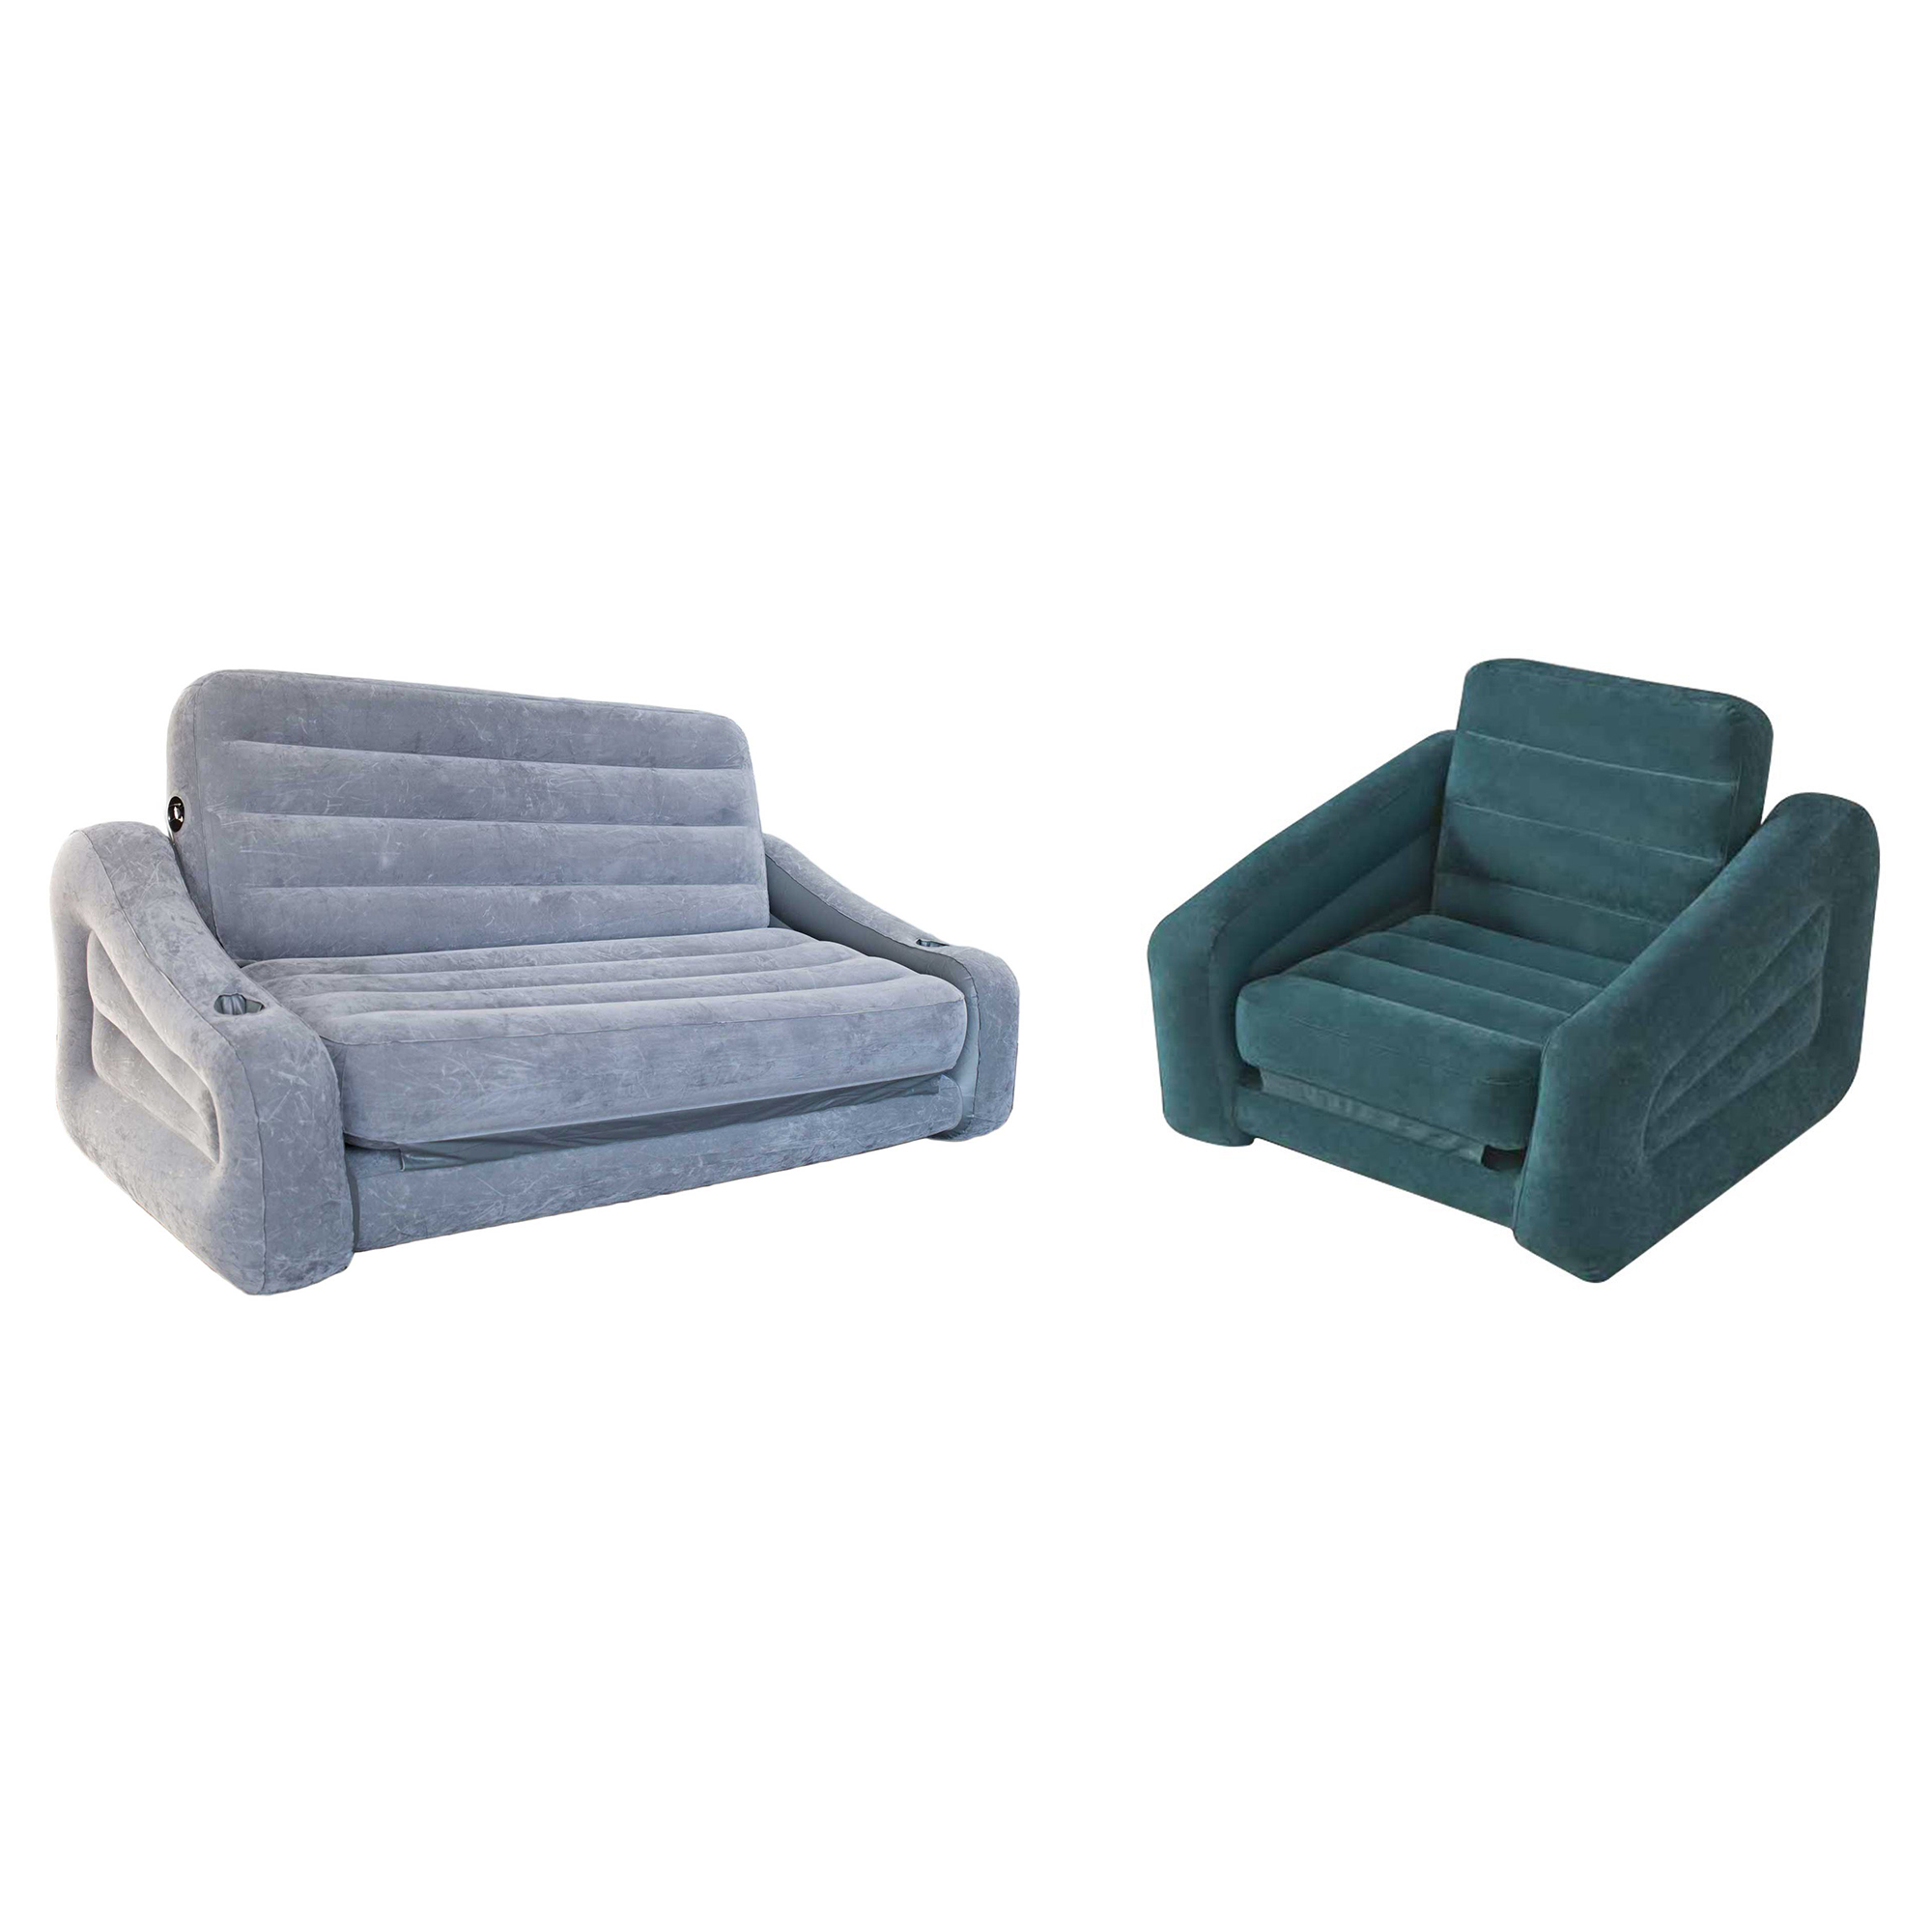 Intex queen inflatable pull out sofa airbed inflatable pull out chair sleeper